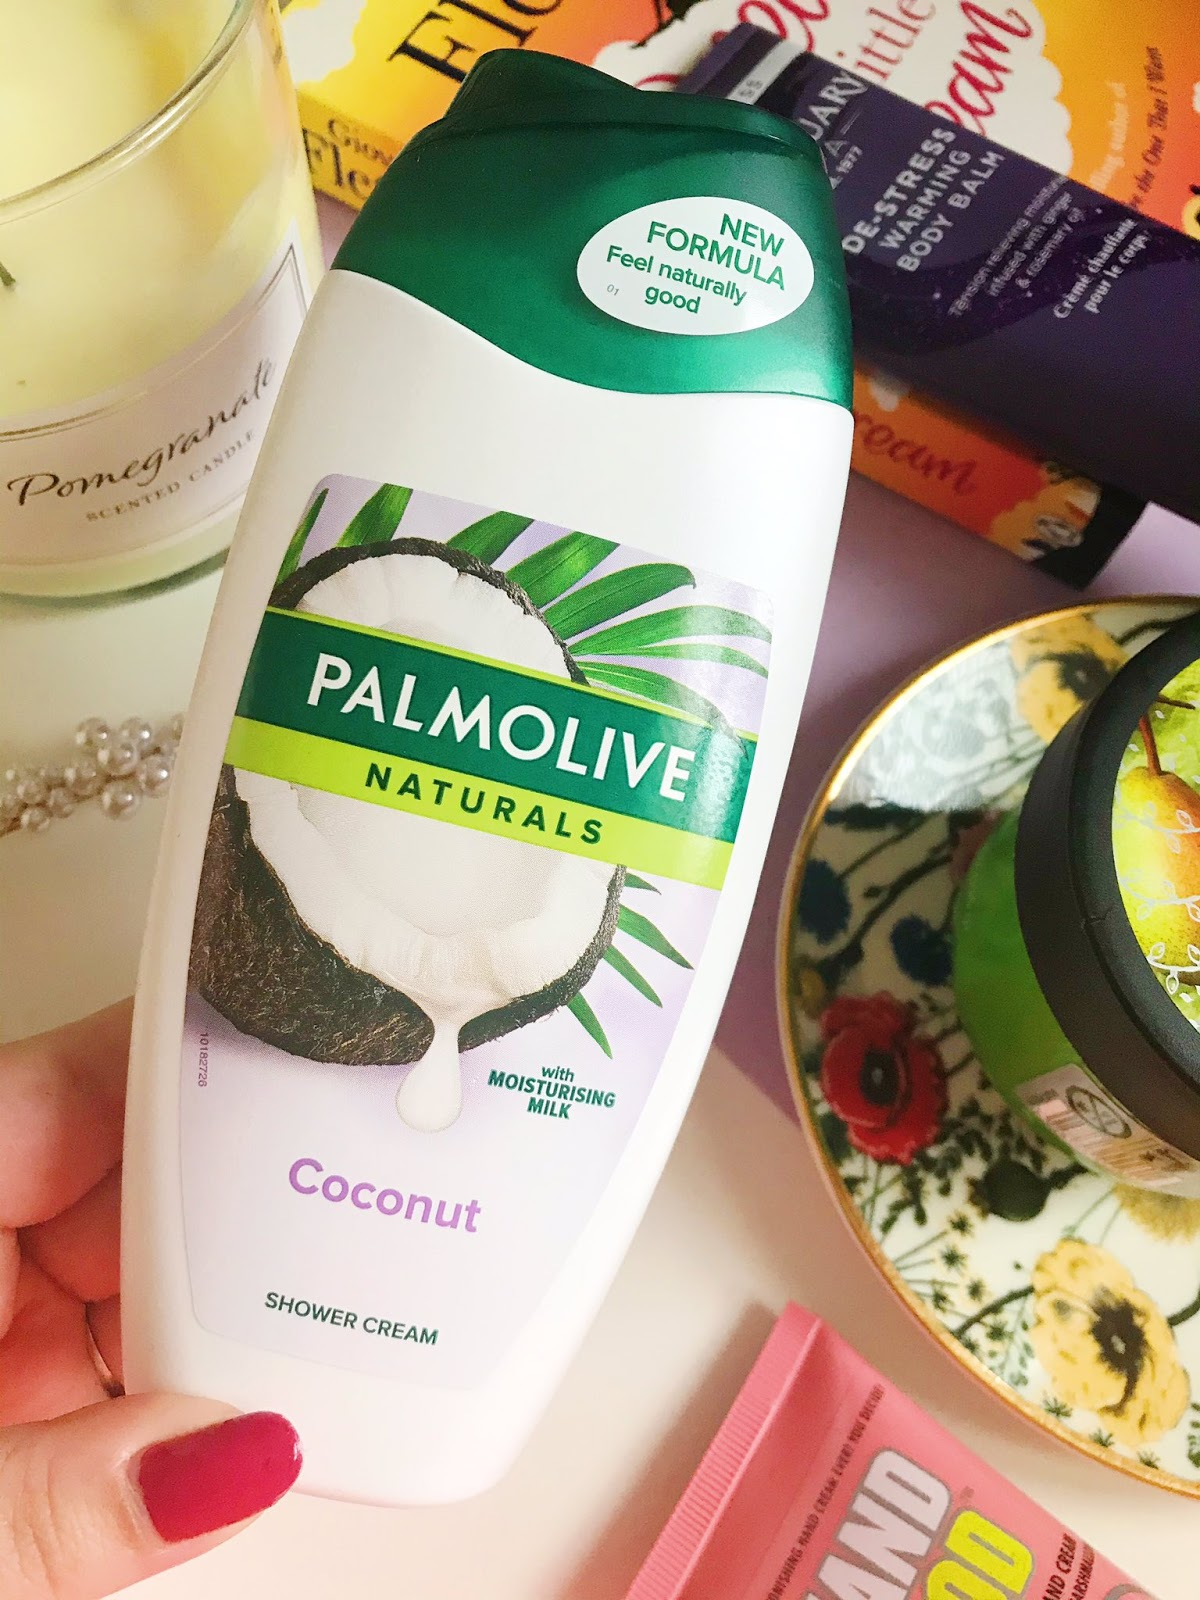 Palmolive Coconut Shower Cream surrounded by candle, book and other beauty products